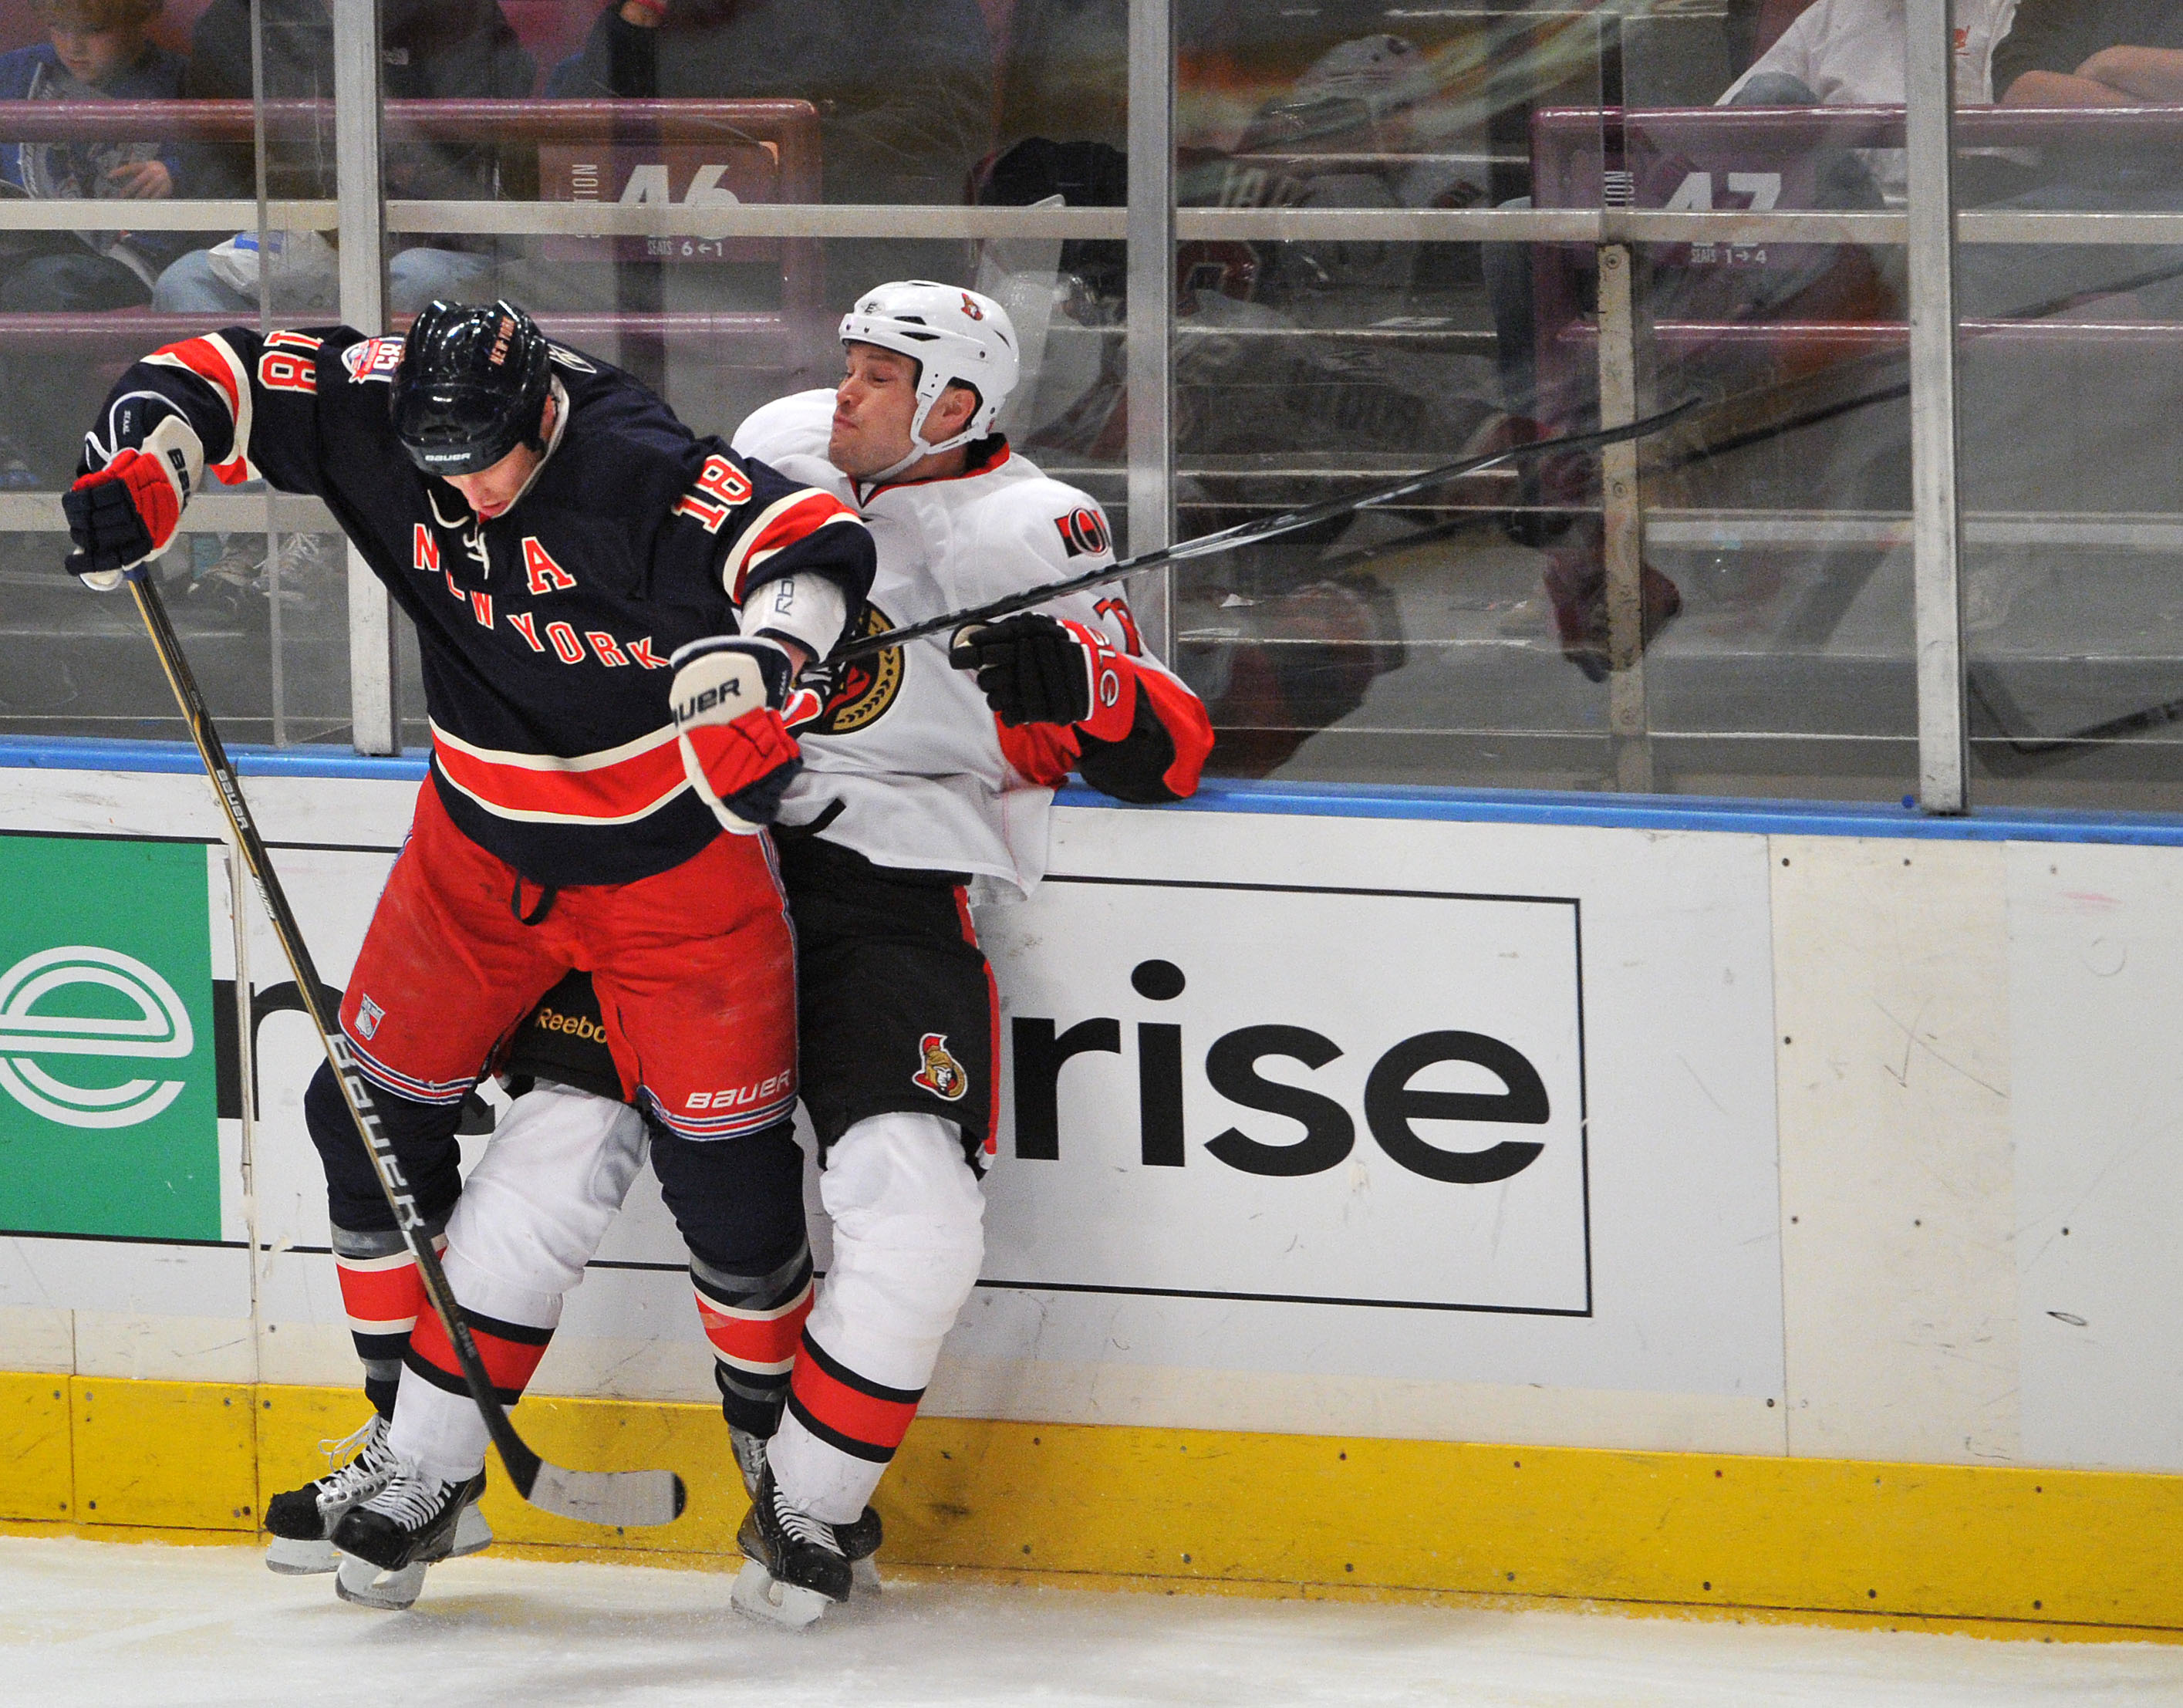 NEW YORK, NY - DECEMBER 5: Marc Staal #18 of the New York Rangers checks Jarkko Ruutu #73 of the Ottawa Senators during the third period at Madison Square Garden on December 5, 2010 in New York City. (Photo by Christopher Pasatieri/Getty Images)